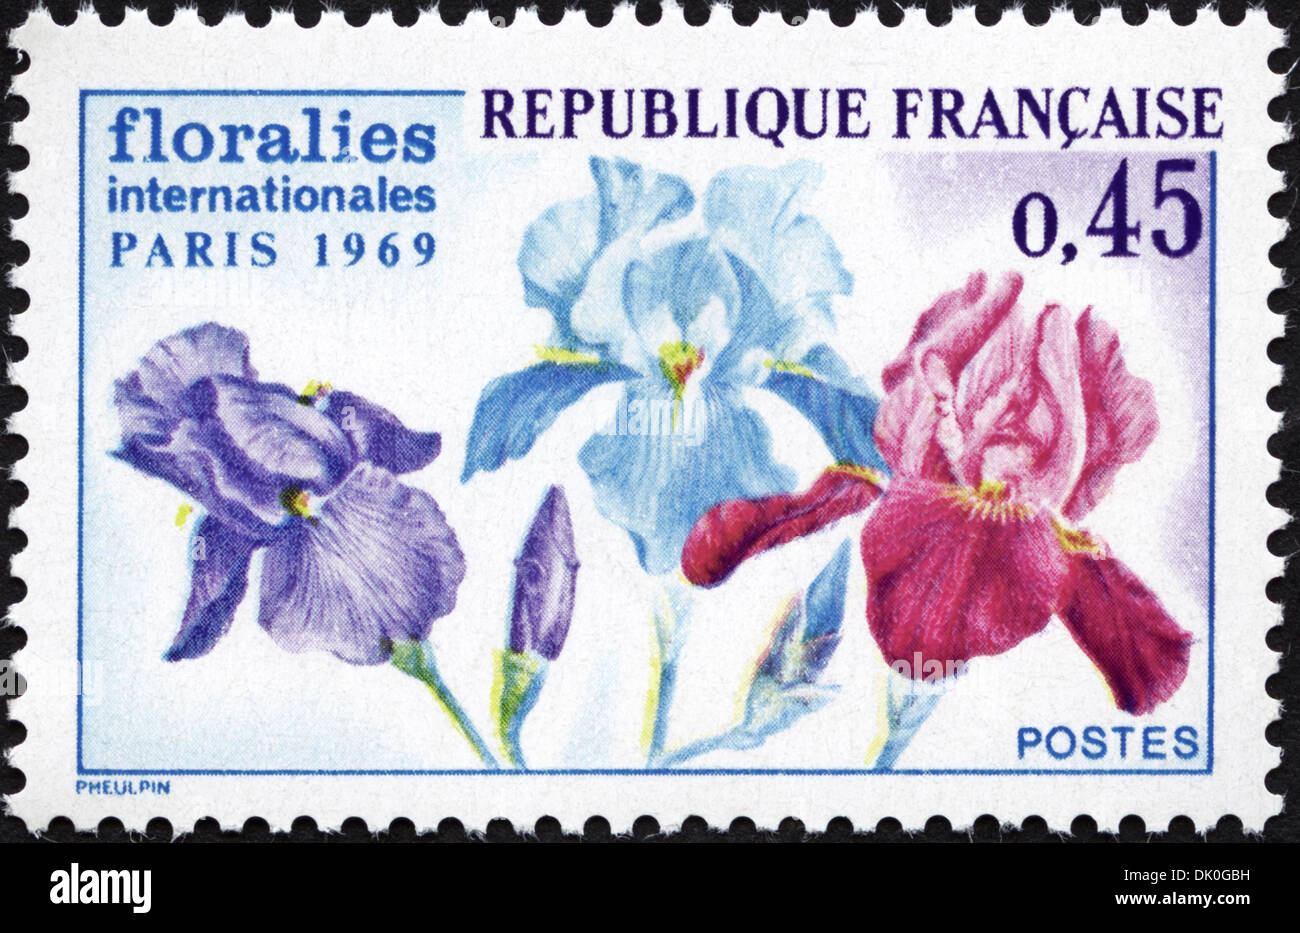 postage stamp French Republic 0,45 featuring International Floral Exhibition 1969 issued 1969 Stock Photo